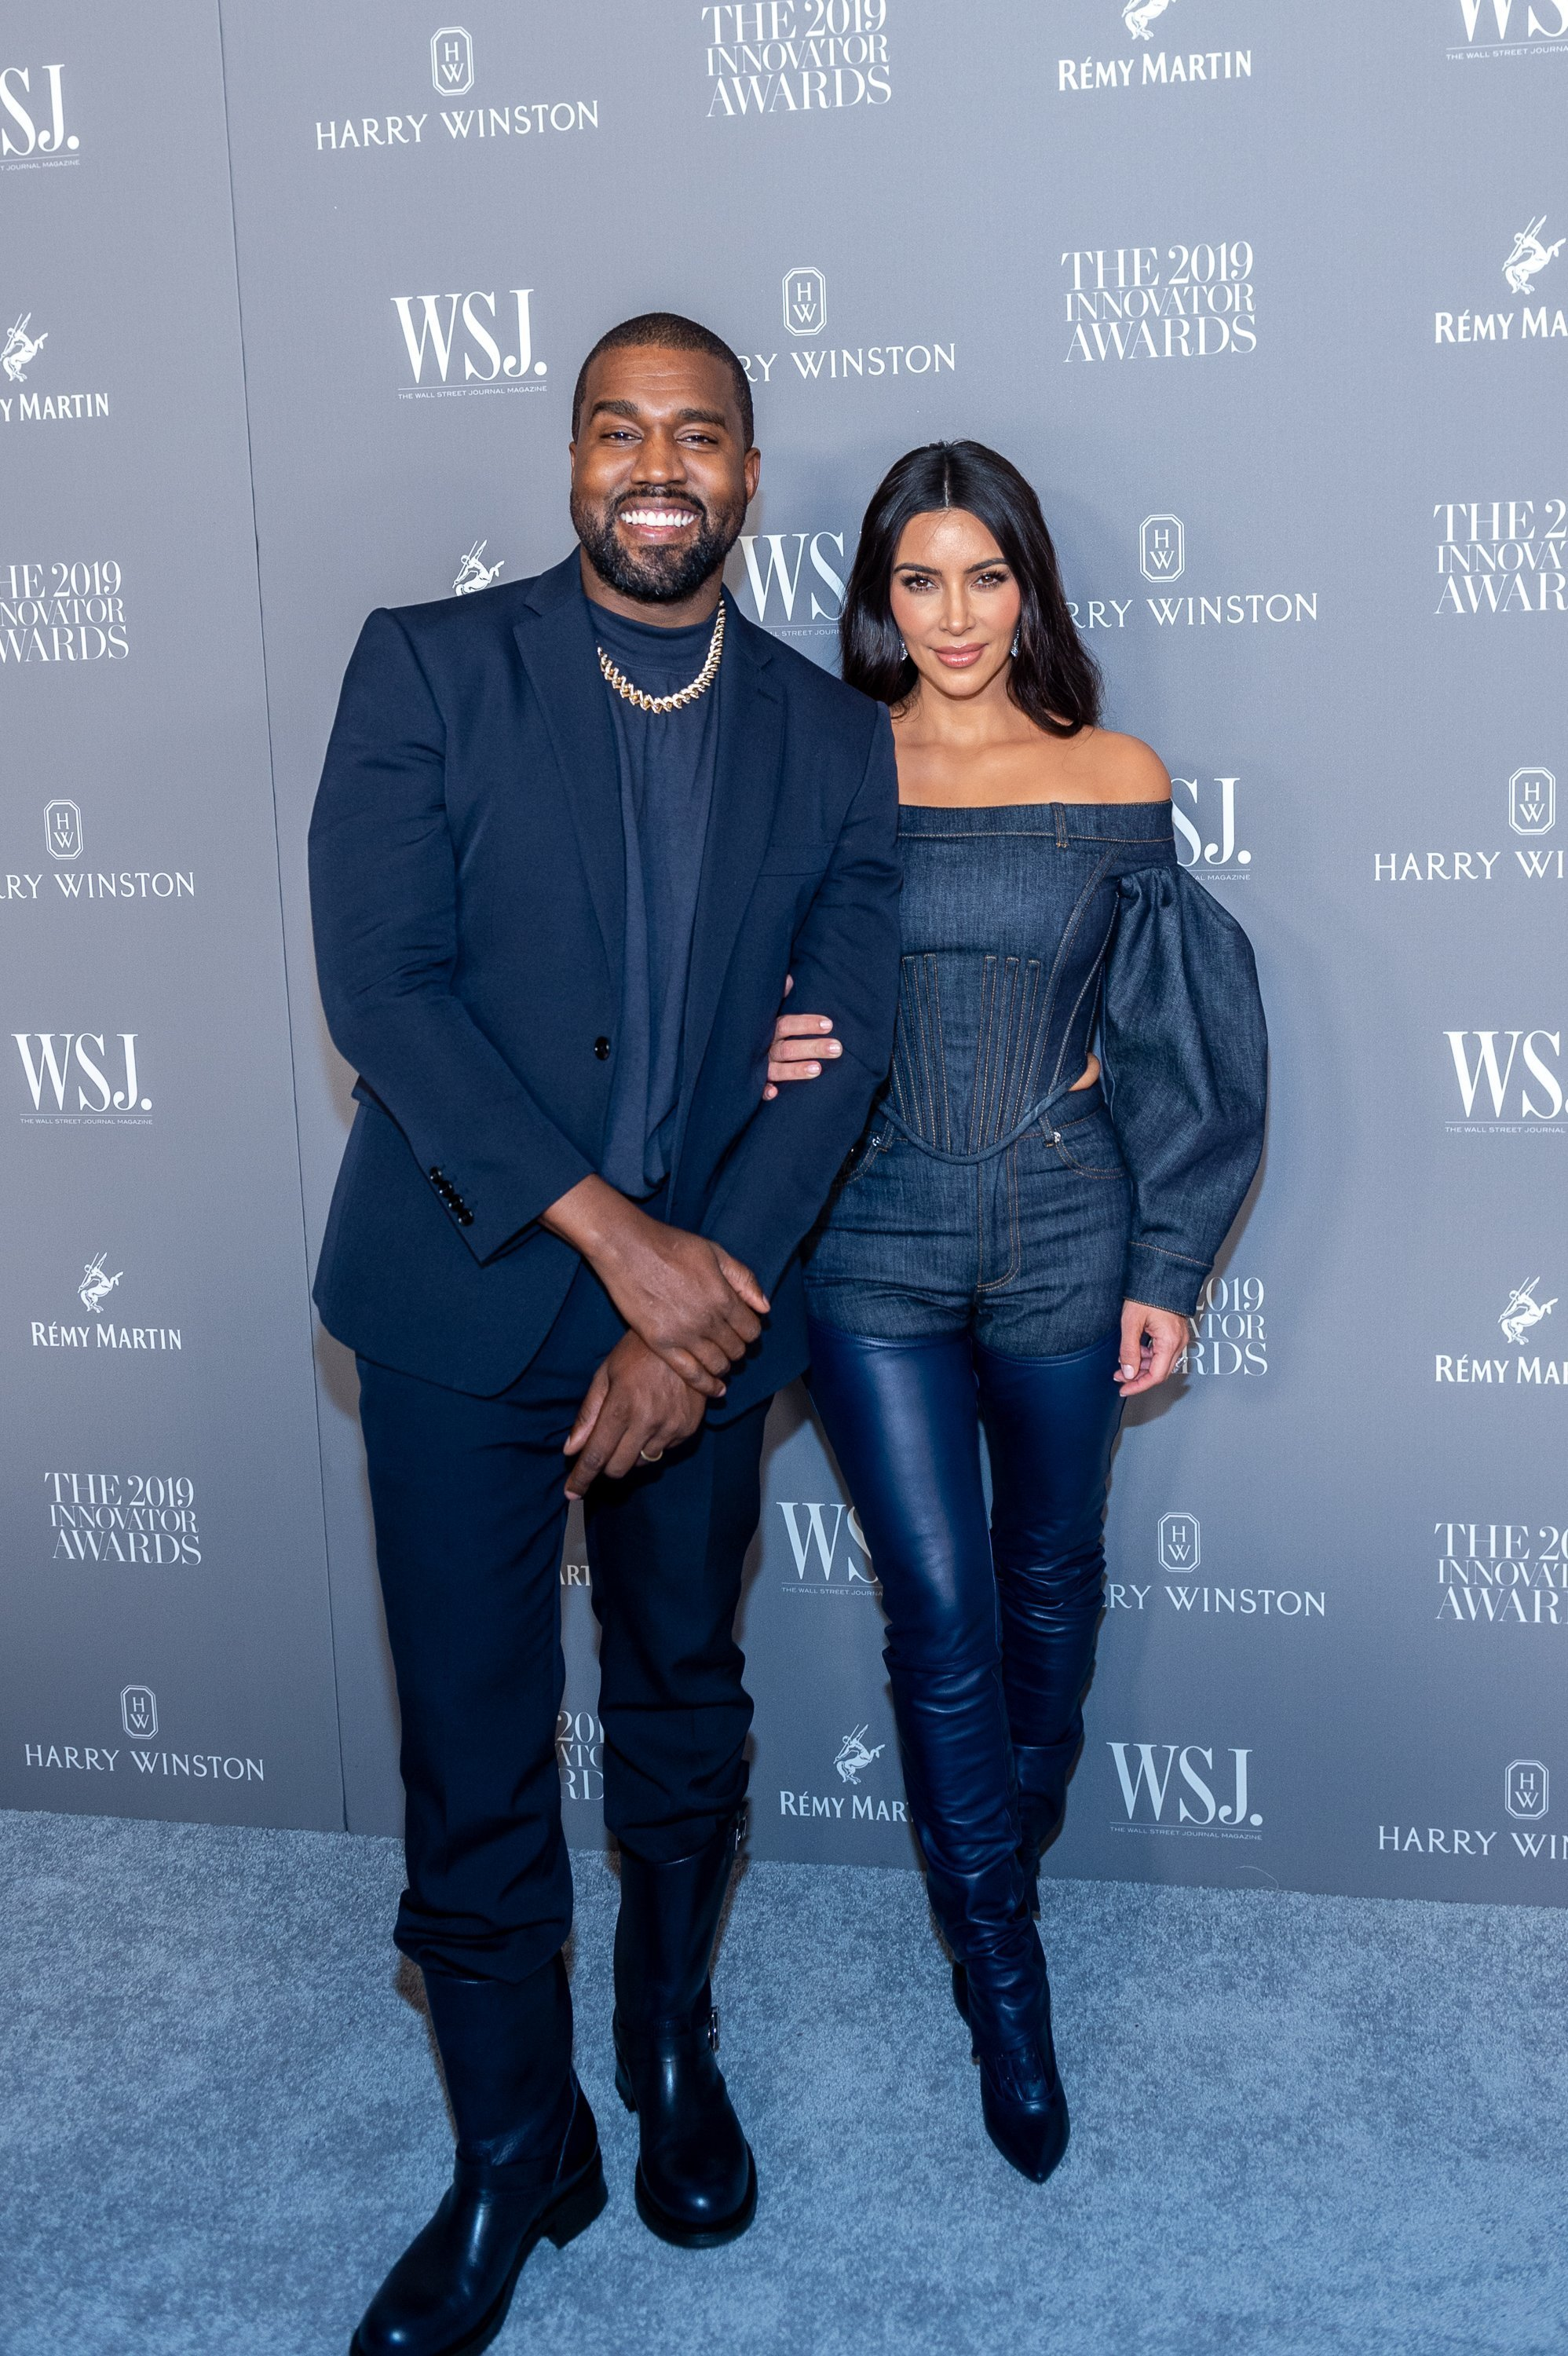 Kanye West and Kim Kardashian attend the WSJ Mag 2019 Innovator Awards at The Museum of Modern Art on November 06, 2019, in New York City. | Source: Getty Images.